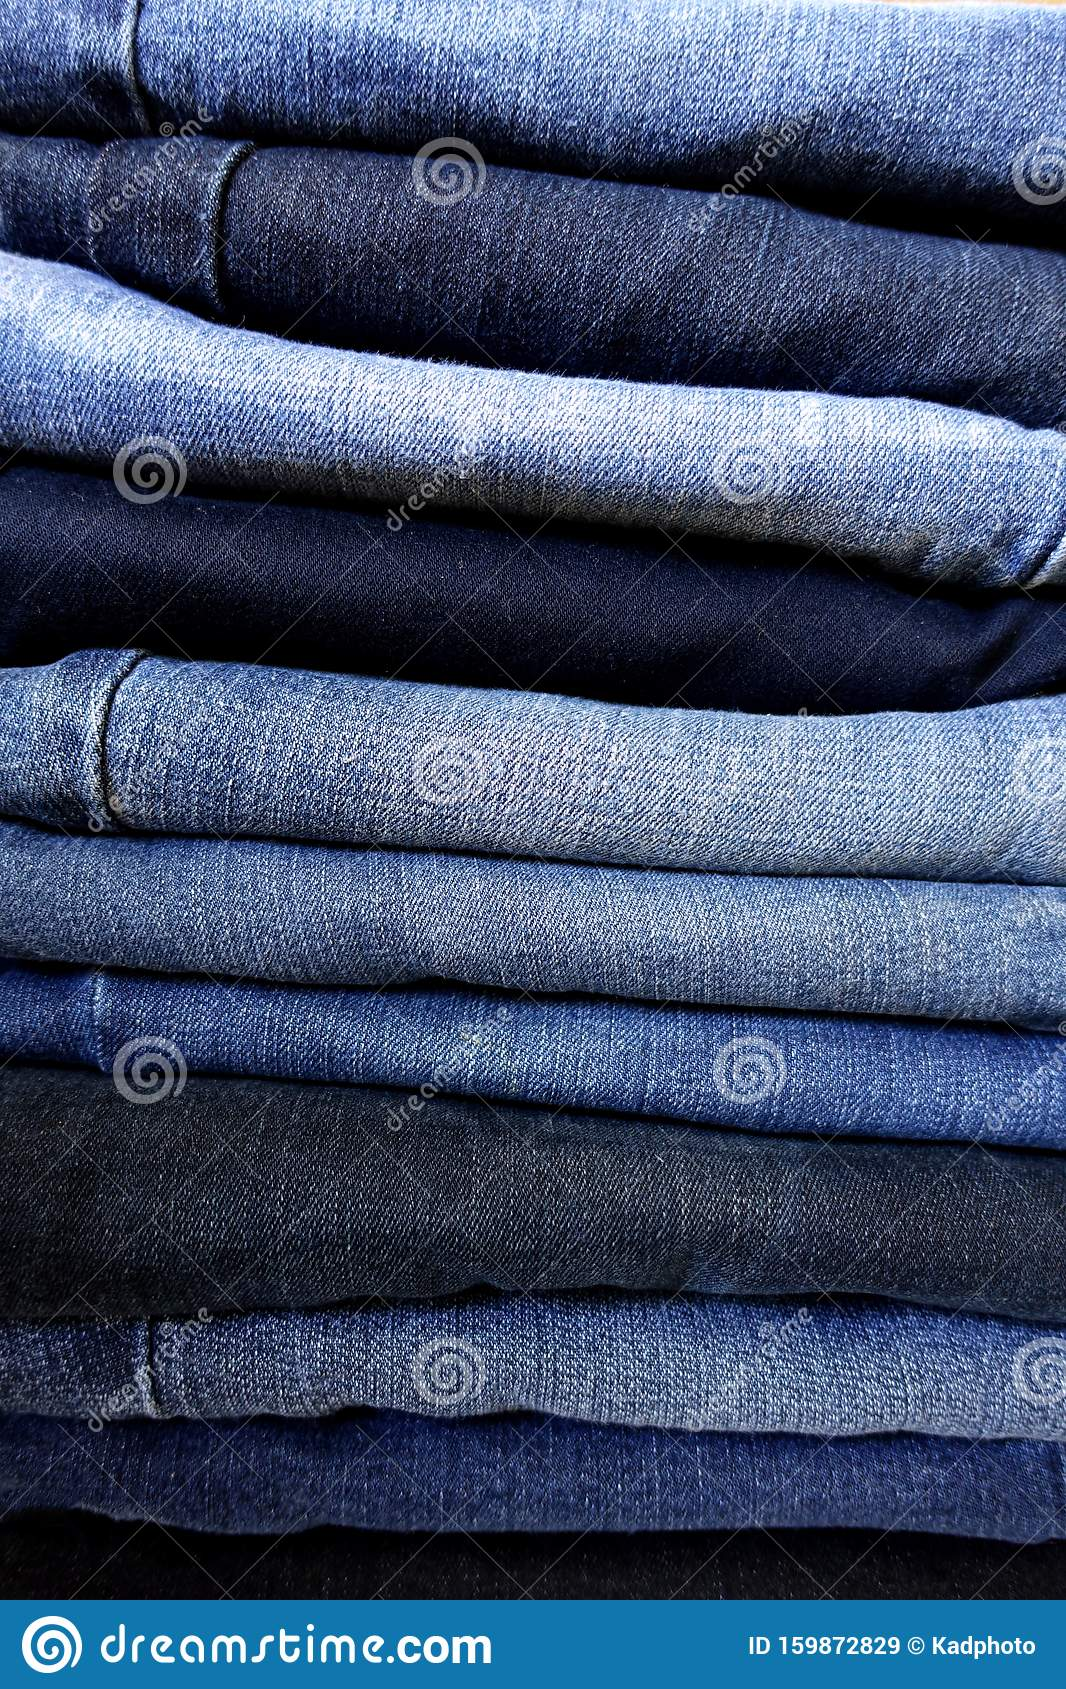 Stack of Blue Jeans - Varying Shades of Washed Denim